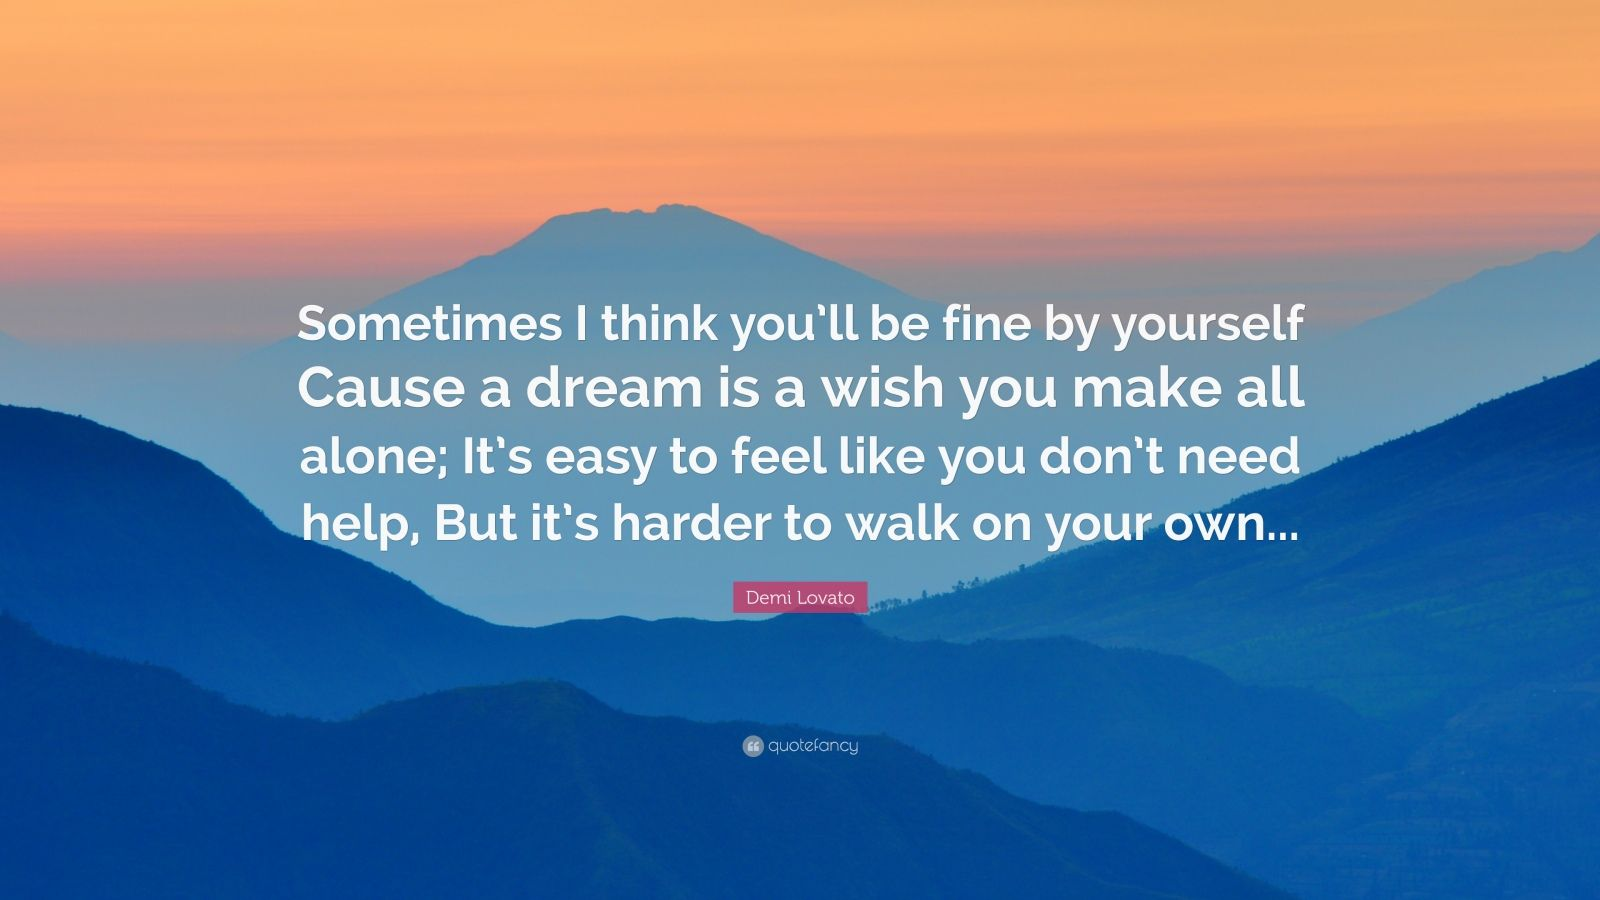 "Demi Lovato Quote: ""Sometimes I think you'll be fine by yourself Cause a dream is a wish you make all alone; It's easy to feel like you don't need help, But it's harder to walk on your own..."""